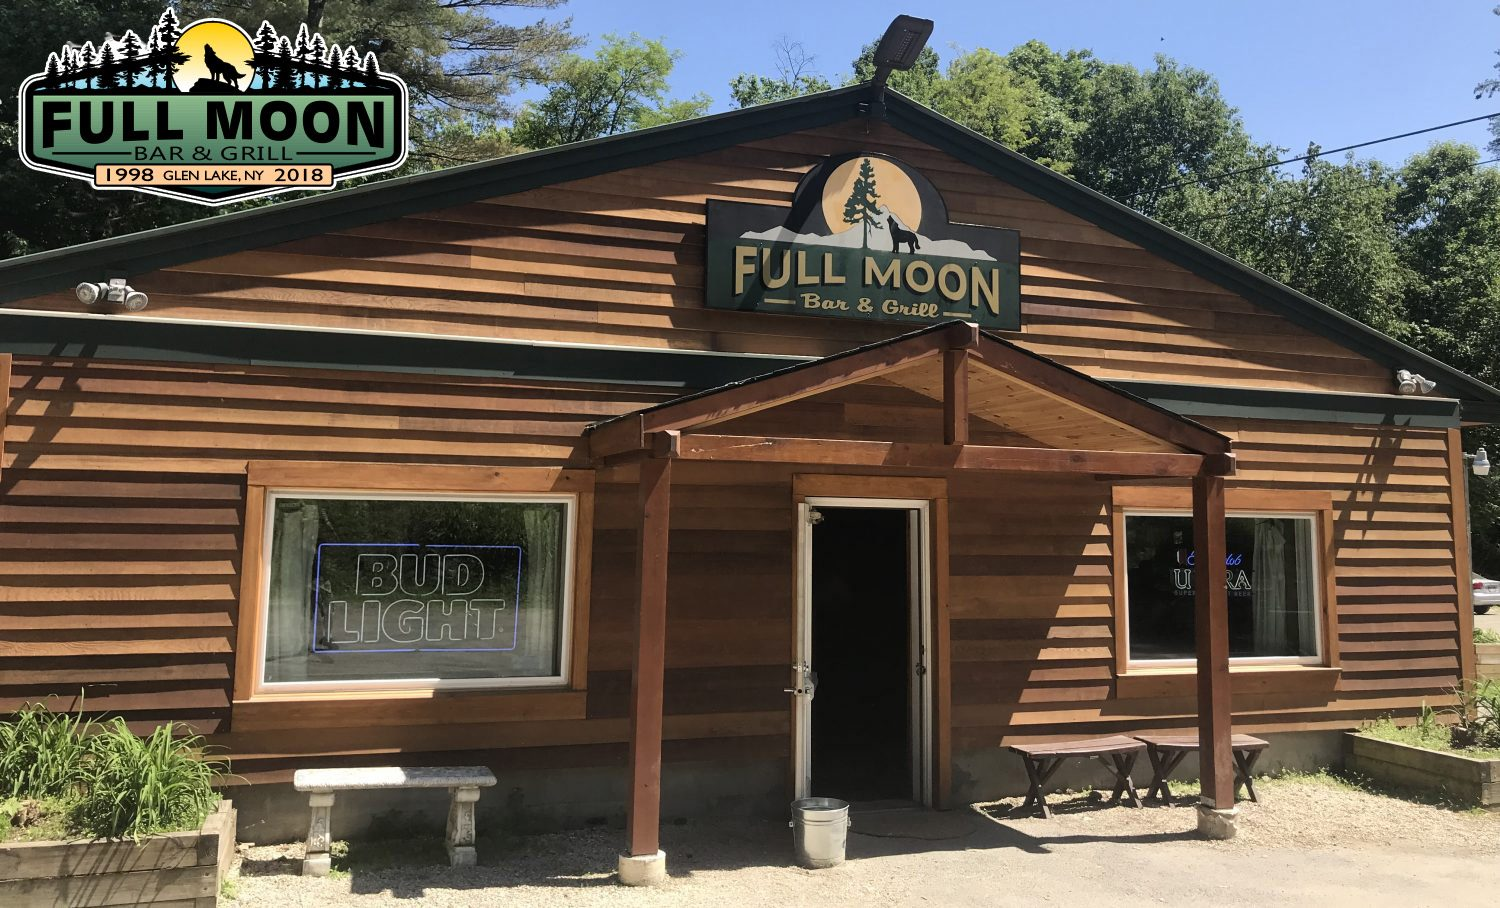 The Full Moon Bar and Grill